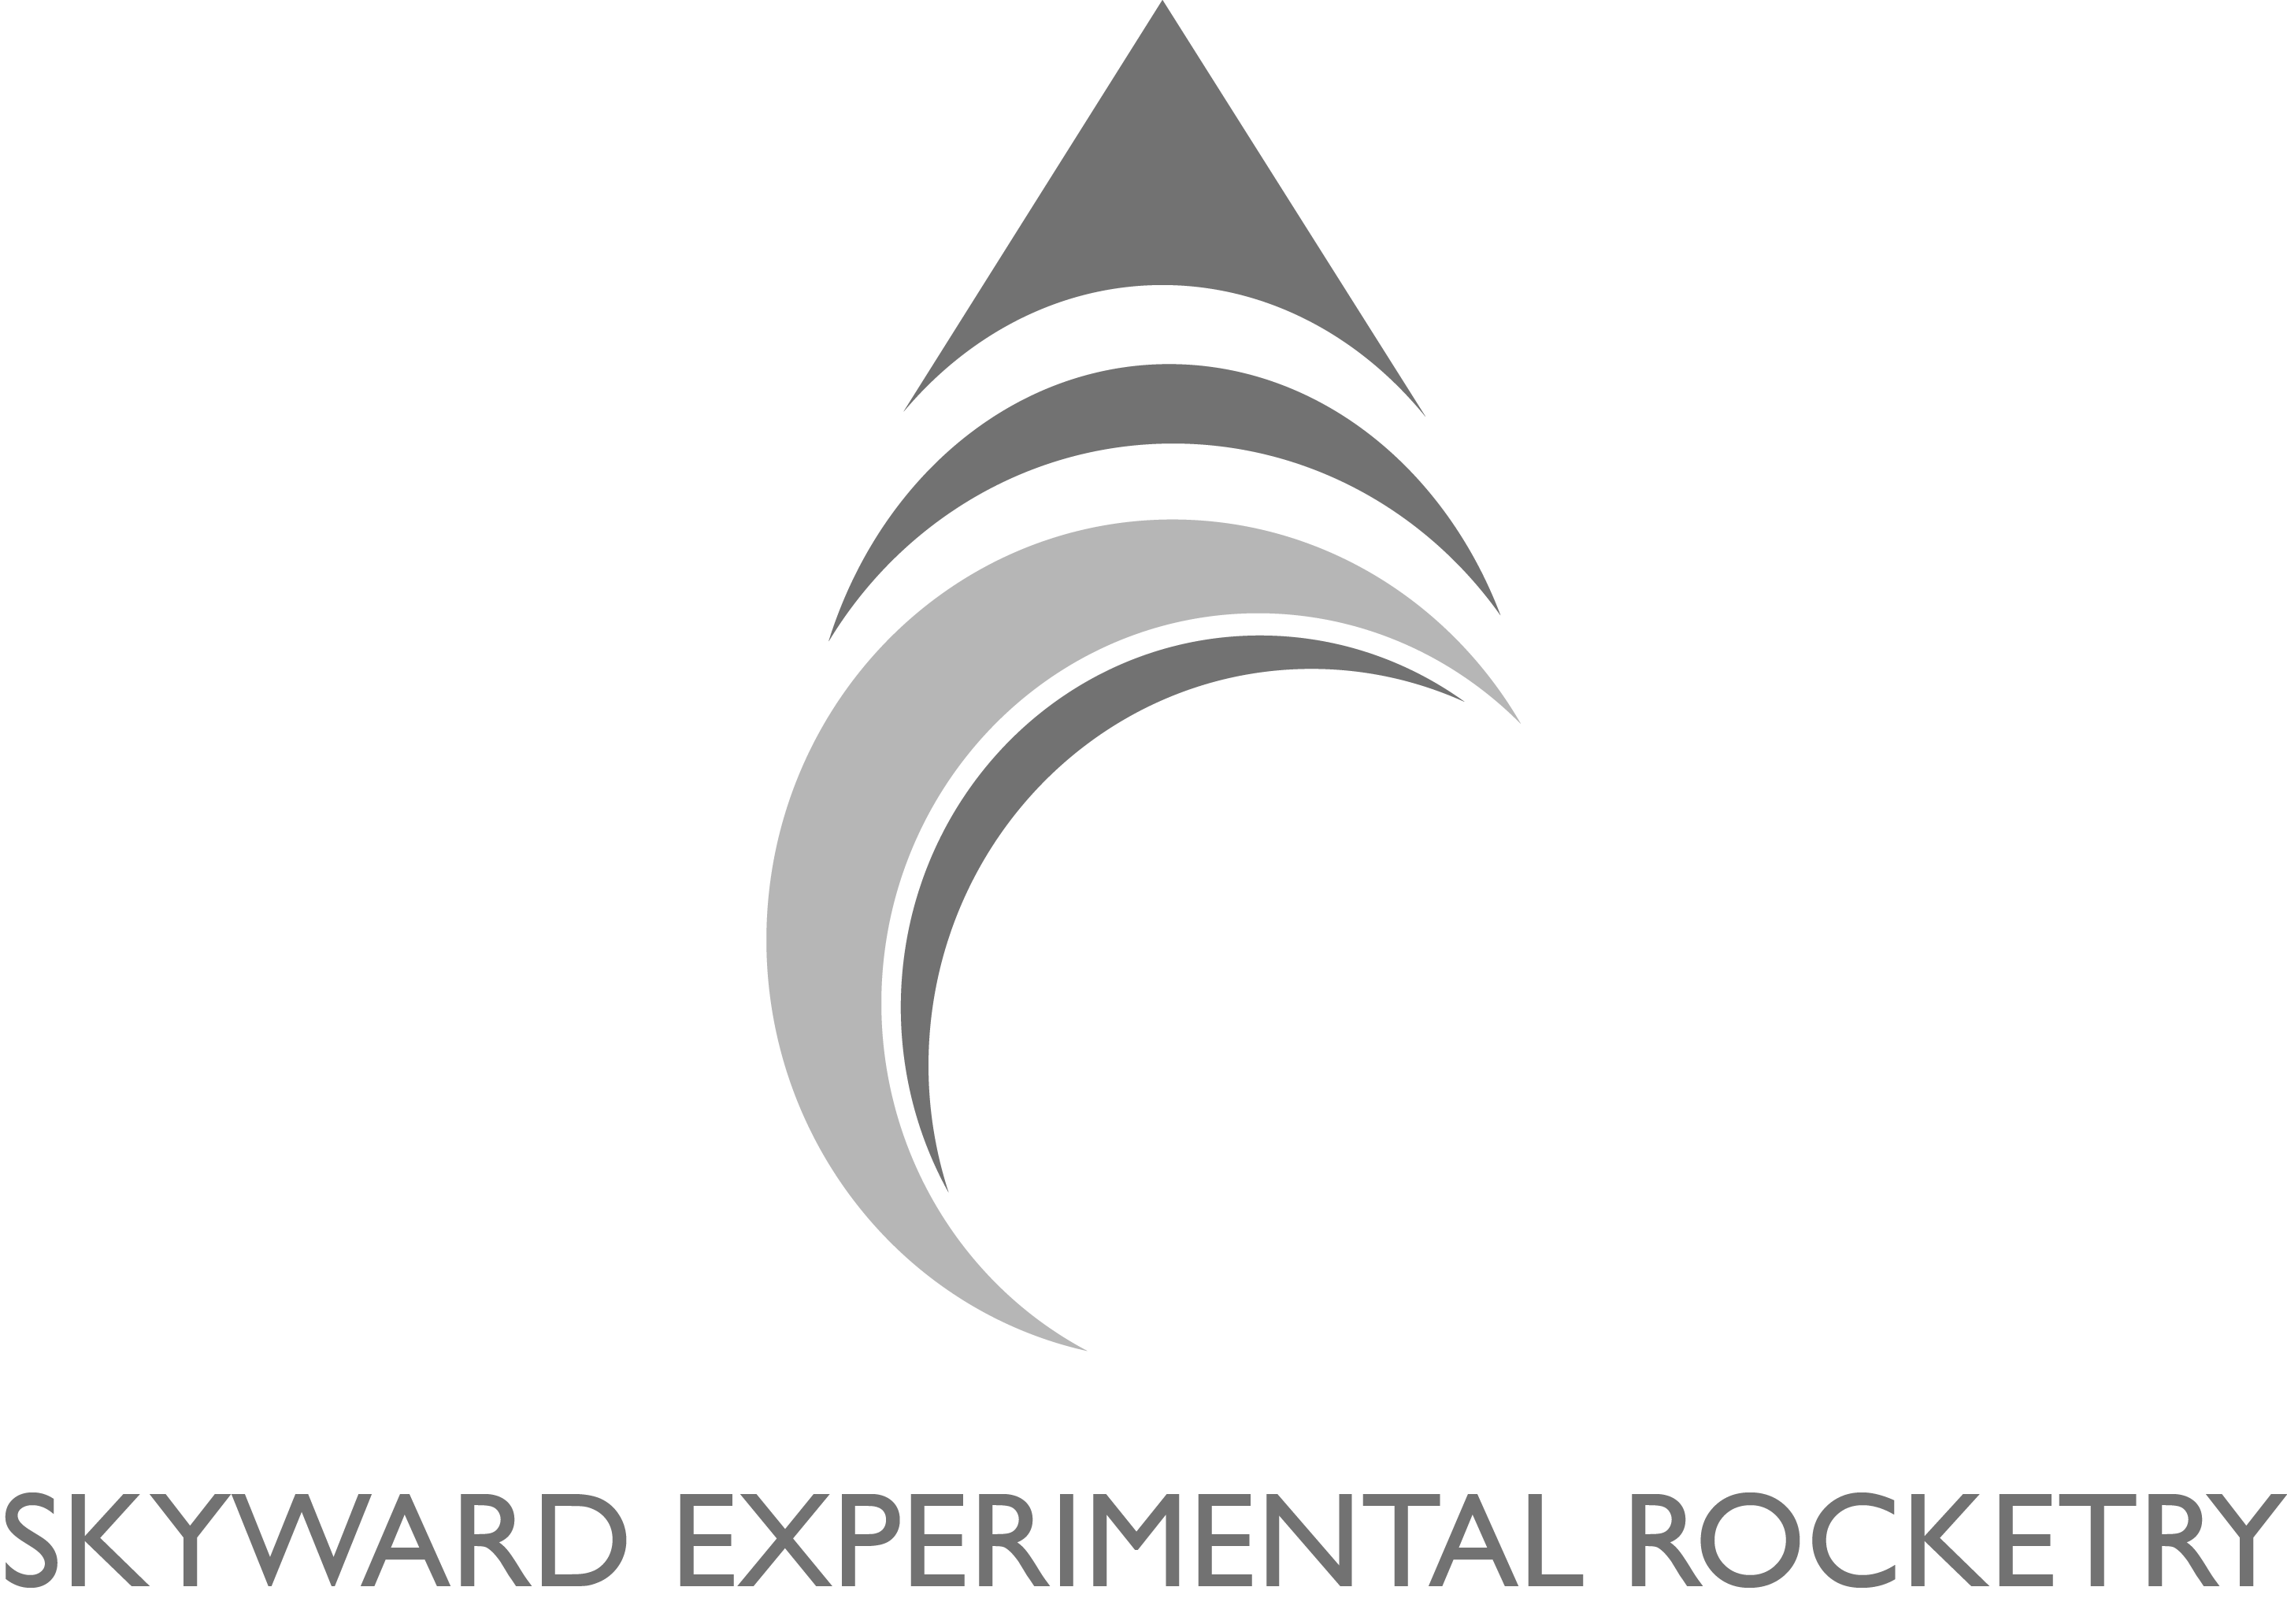 Skyward experimental rocketry